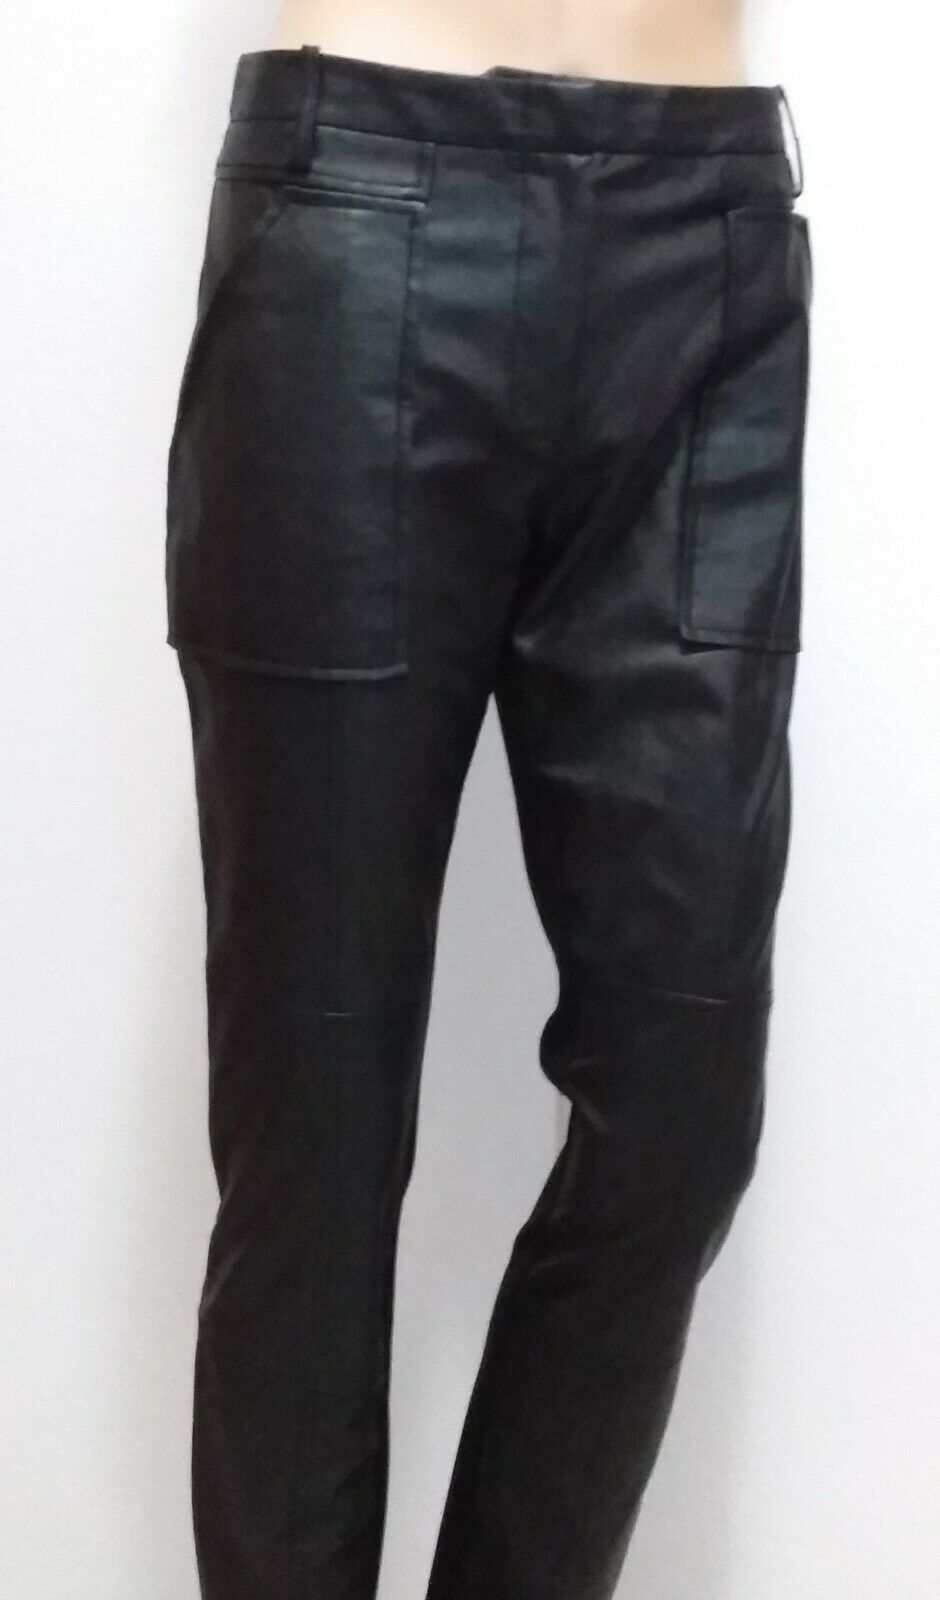 BCBGMaxazria Connor Hose Faux Leather Stretch Cargo Legging schwarz sz M M M NWOT